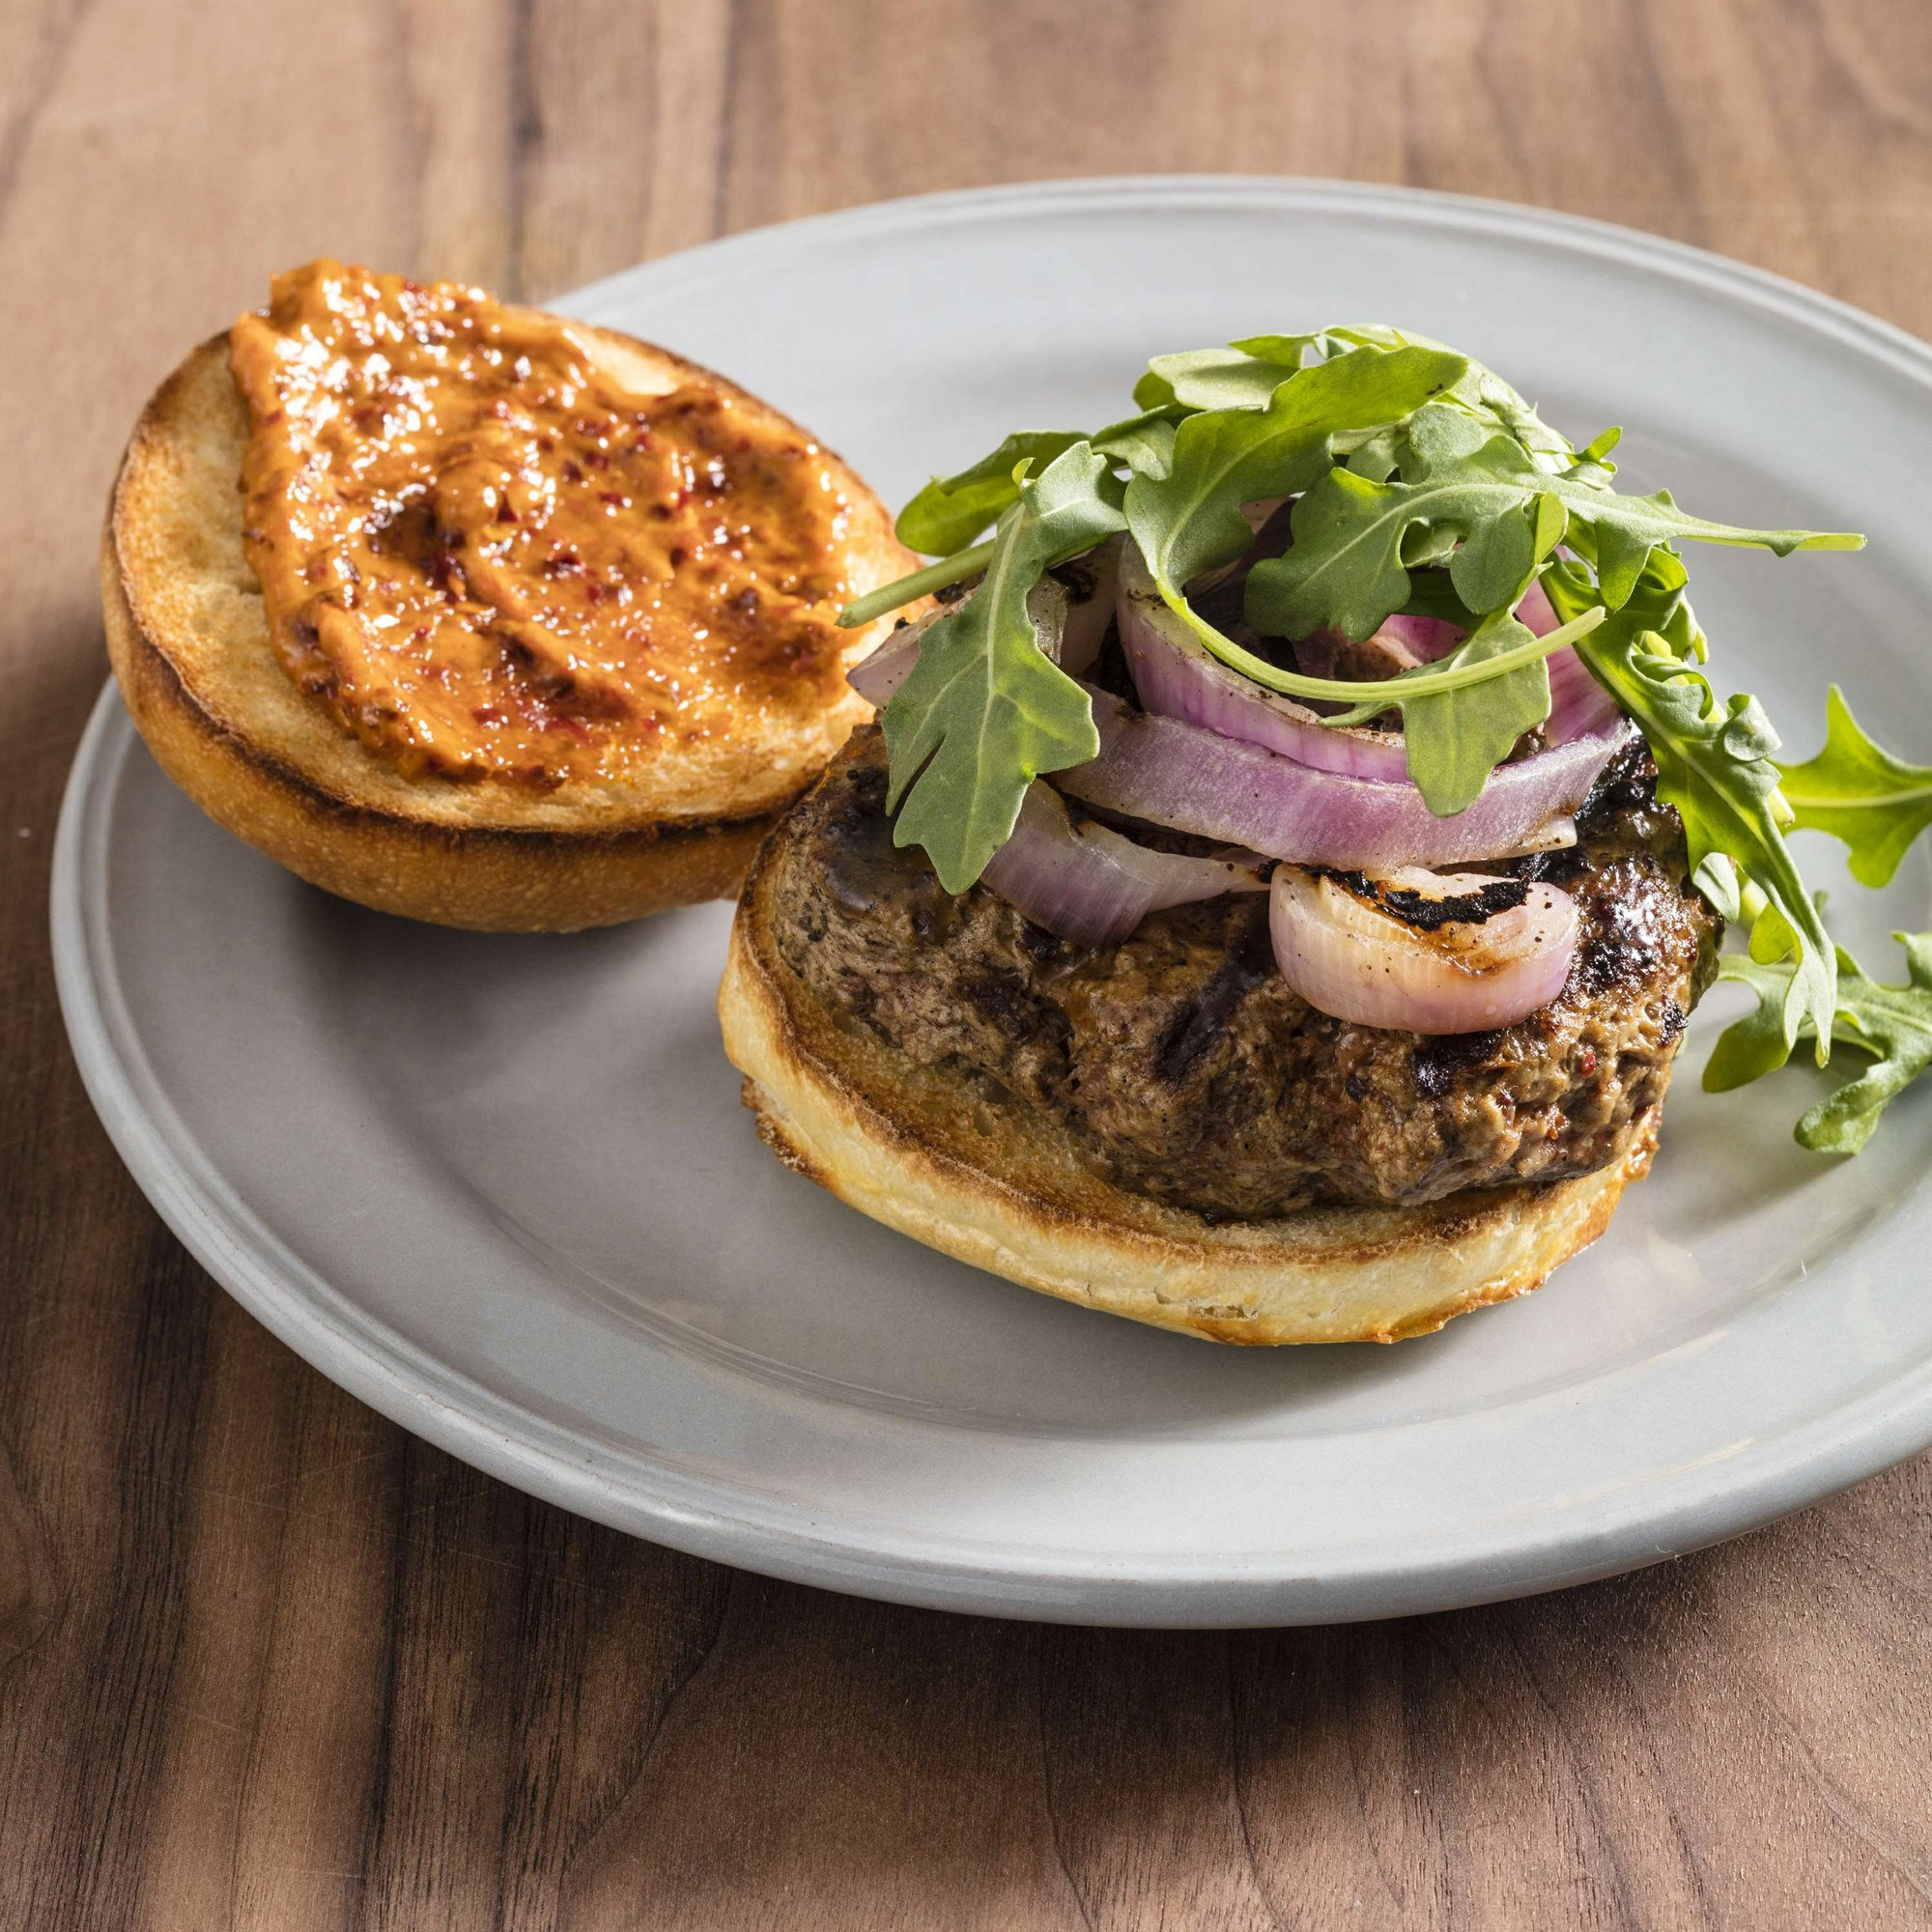 Harissa pairs perfectly with lamb in this spiced burger